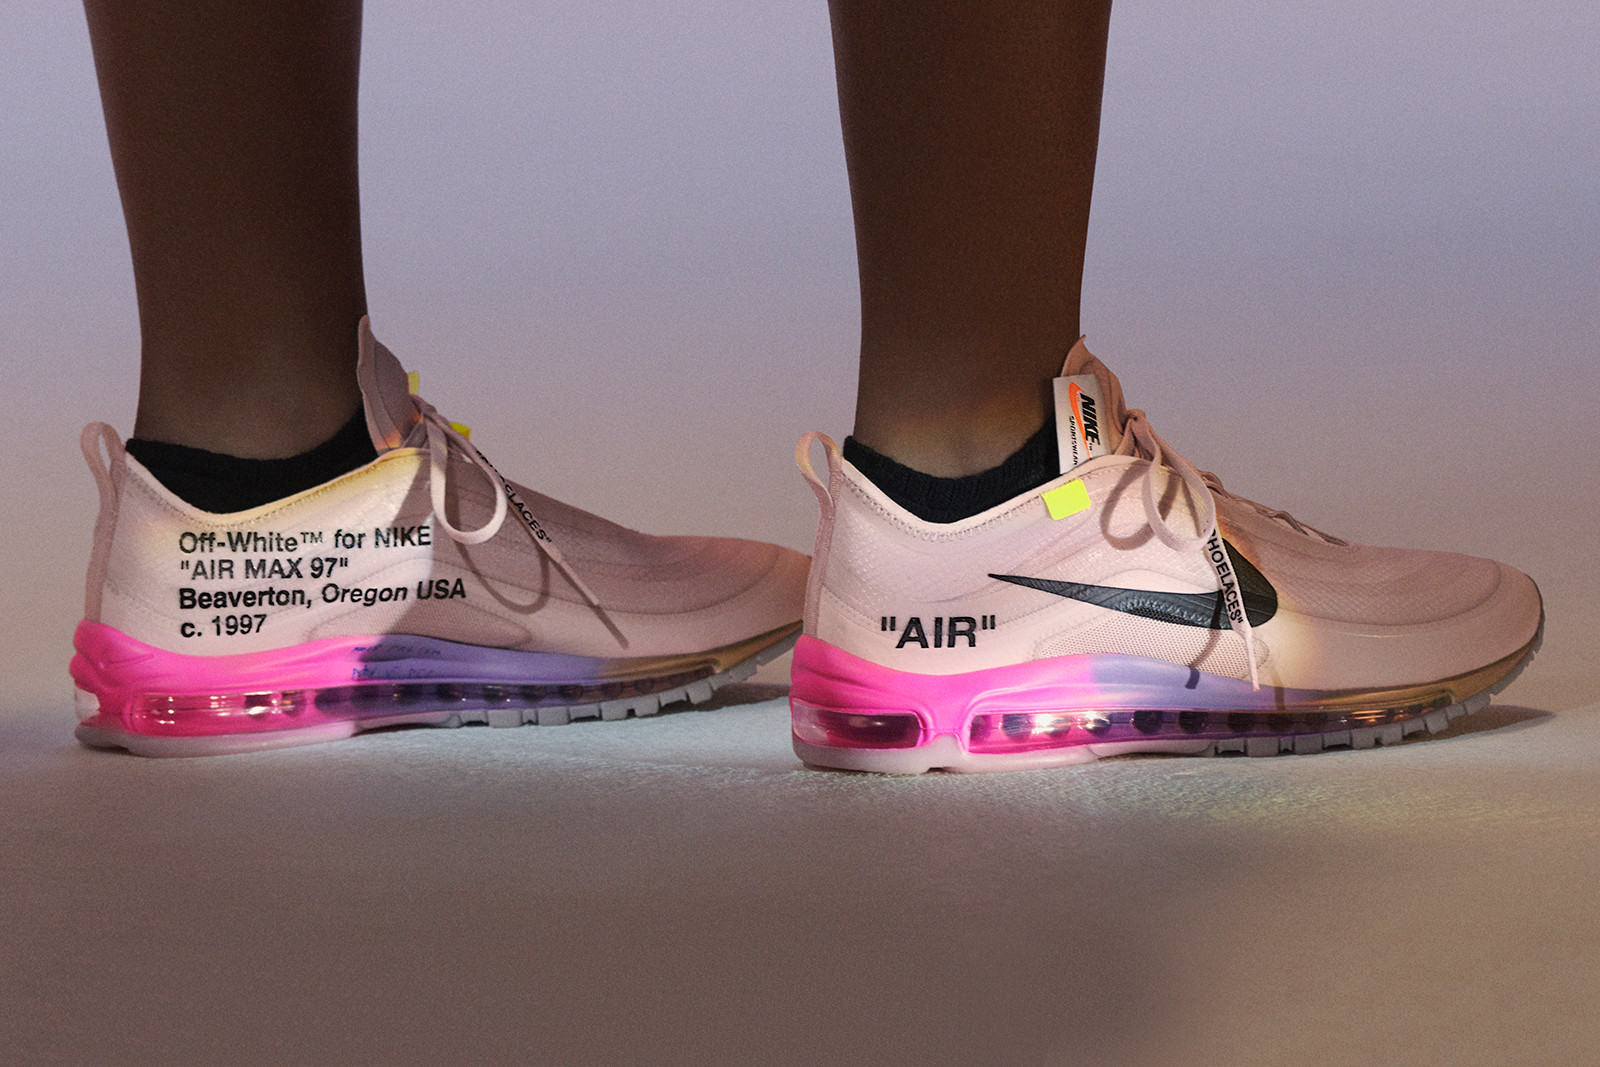 virgil-abloh-serena-williams-nike-queen-collab-details-8